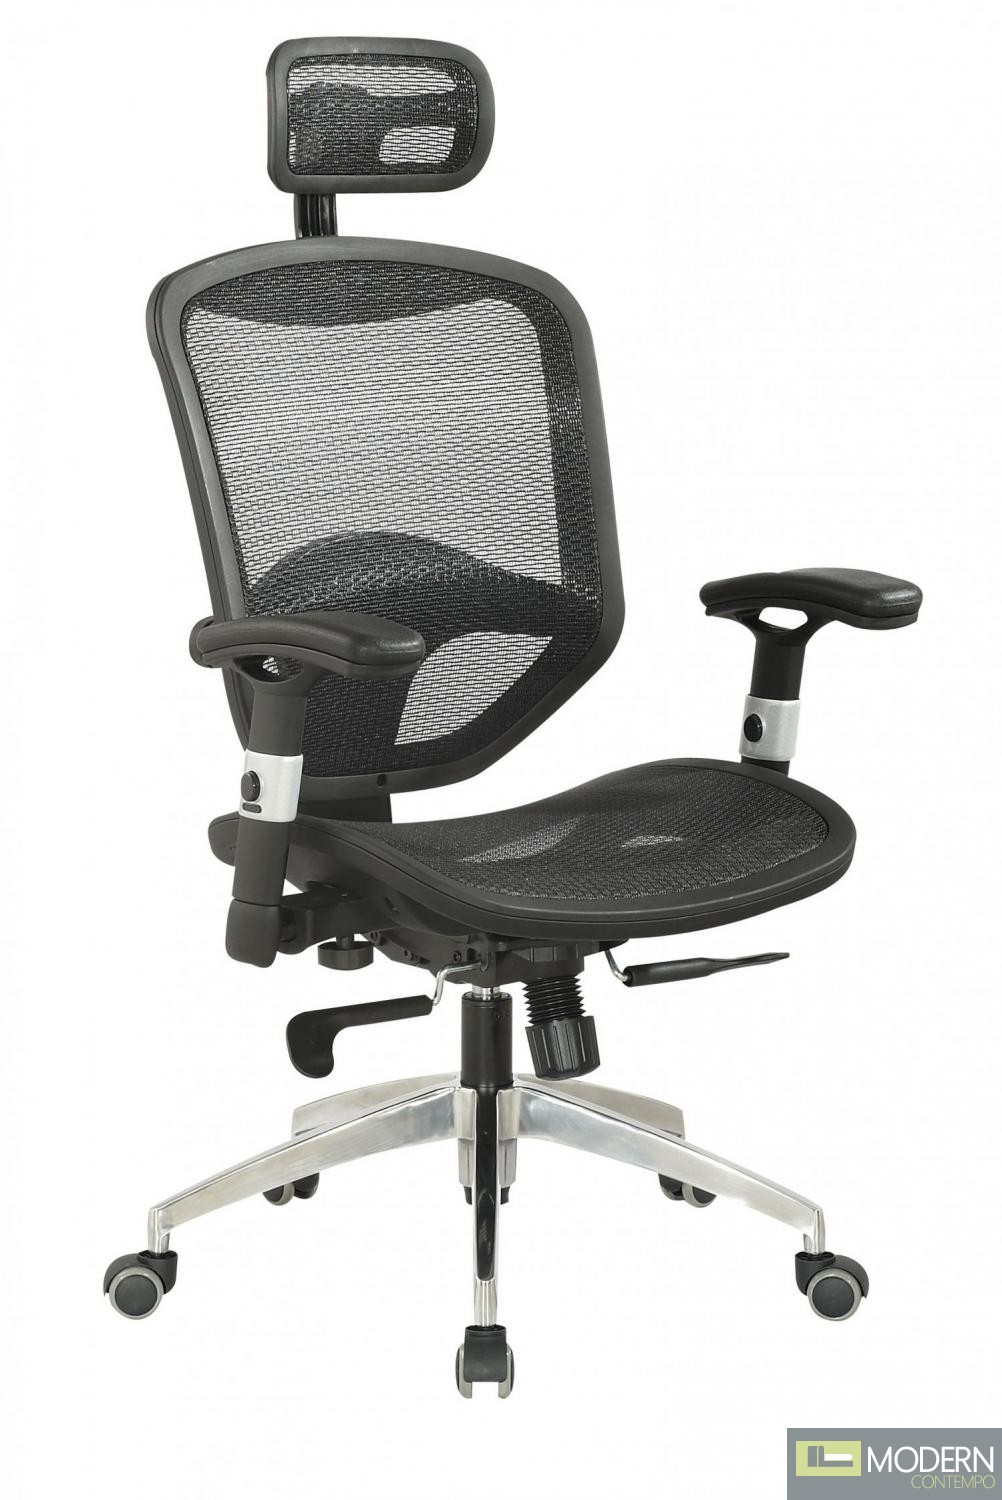 Mesh Seat Amp Back WHeadrest Multi Adjustable Pneumatic Gas Lift Office Chair